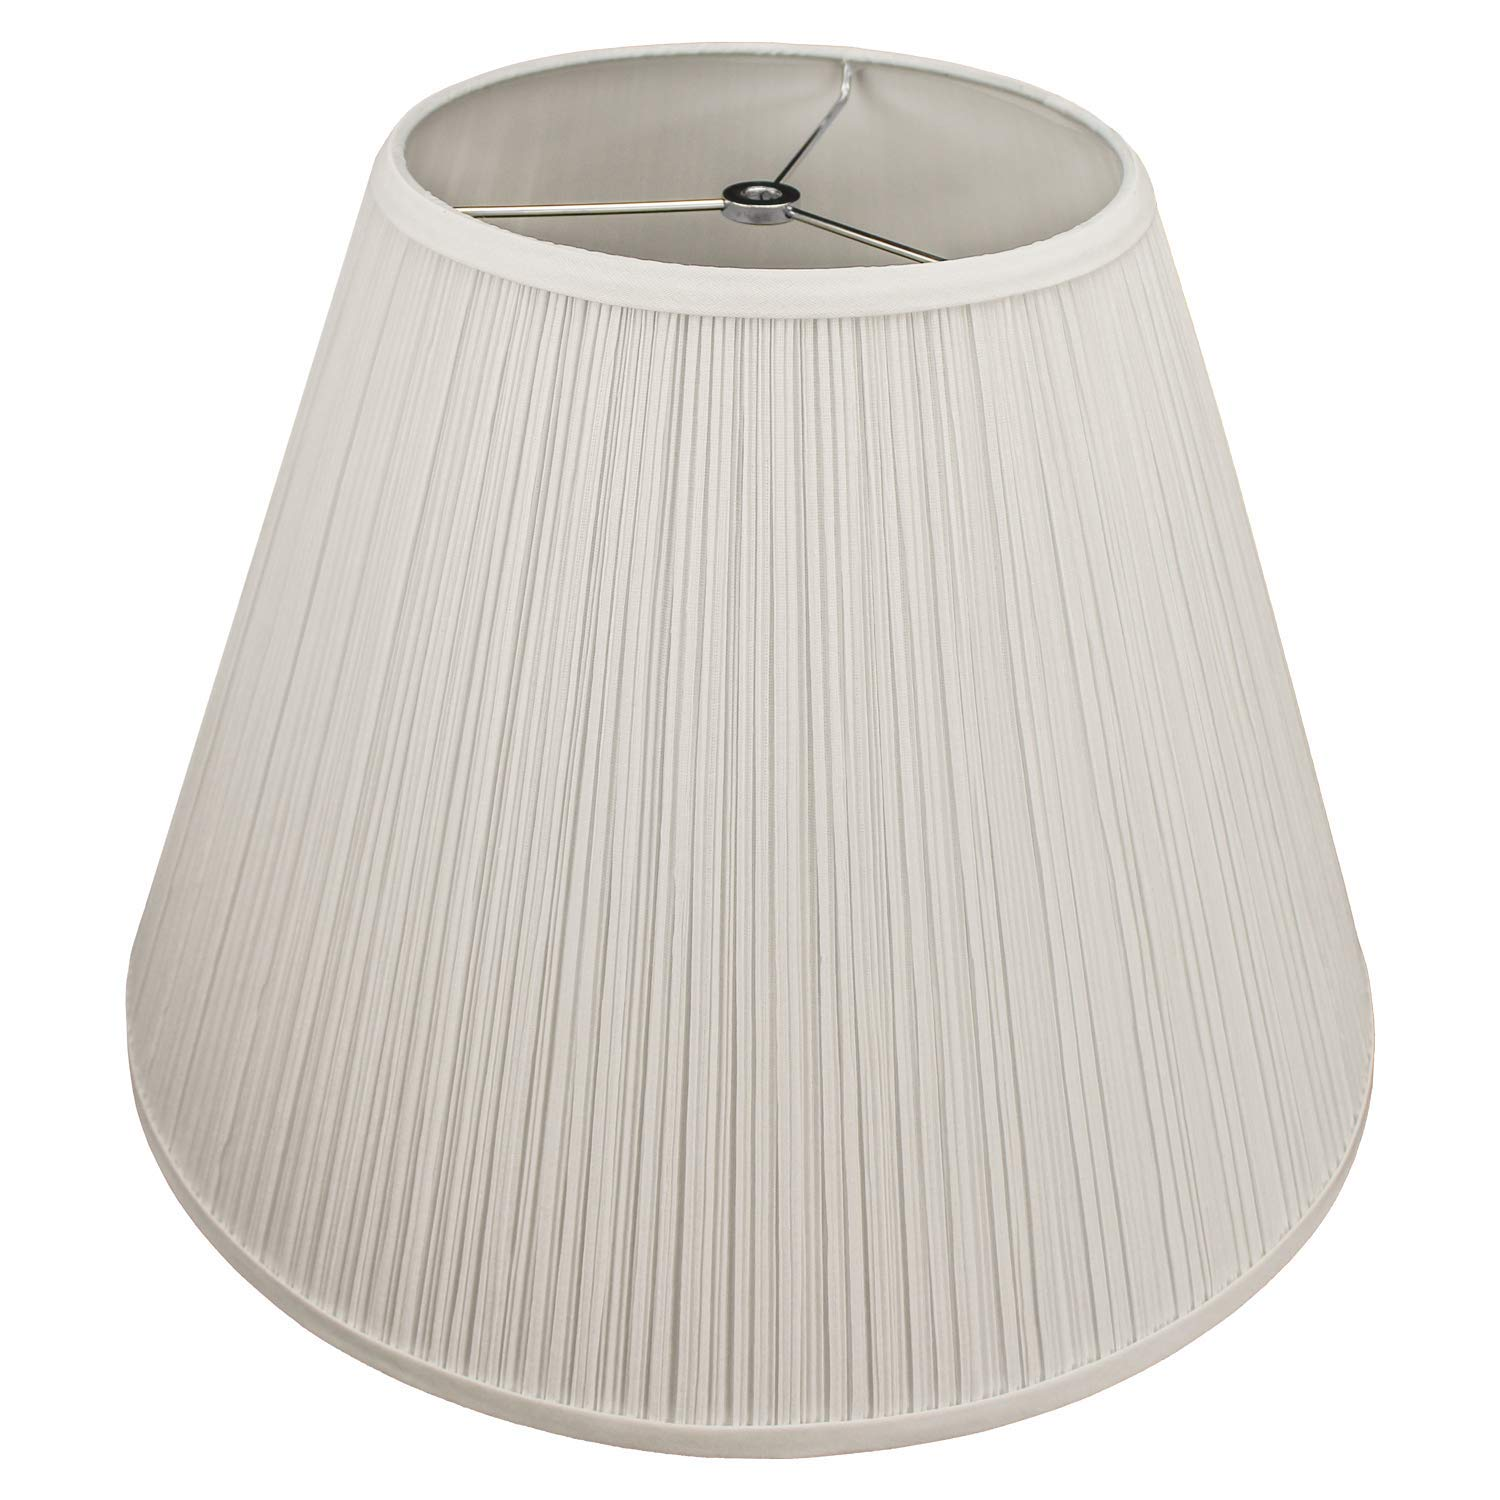 FenchelShades.com Lampshade 9'' Top Diameter x 18'' Bottom Diameter x 13'' Slant Height with Washer (Spider) Attachment for Lamps with a Harp (Pleated Cream)